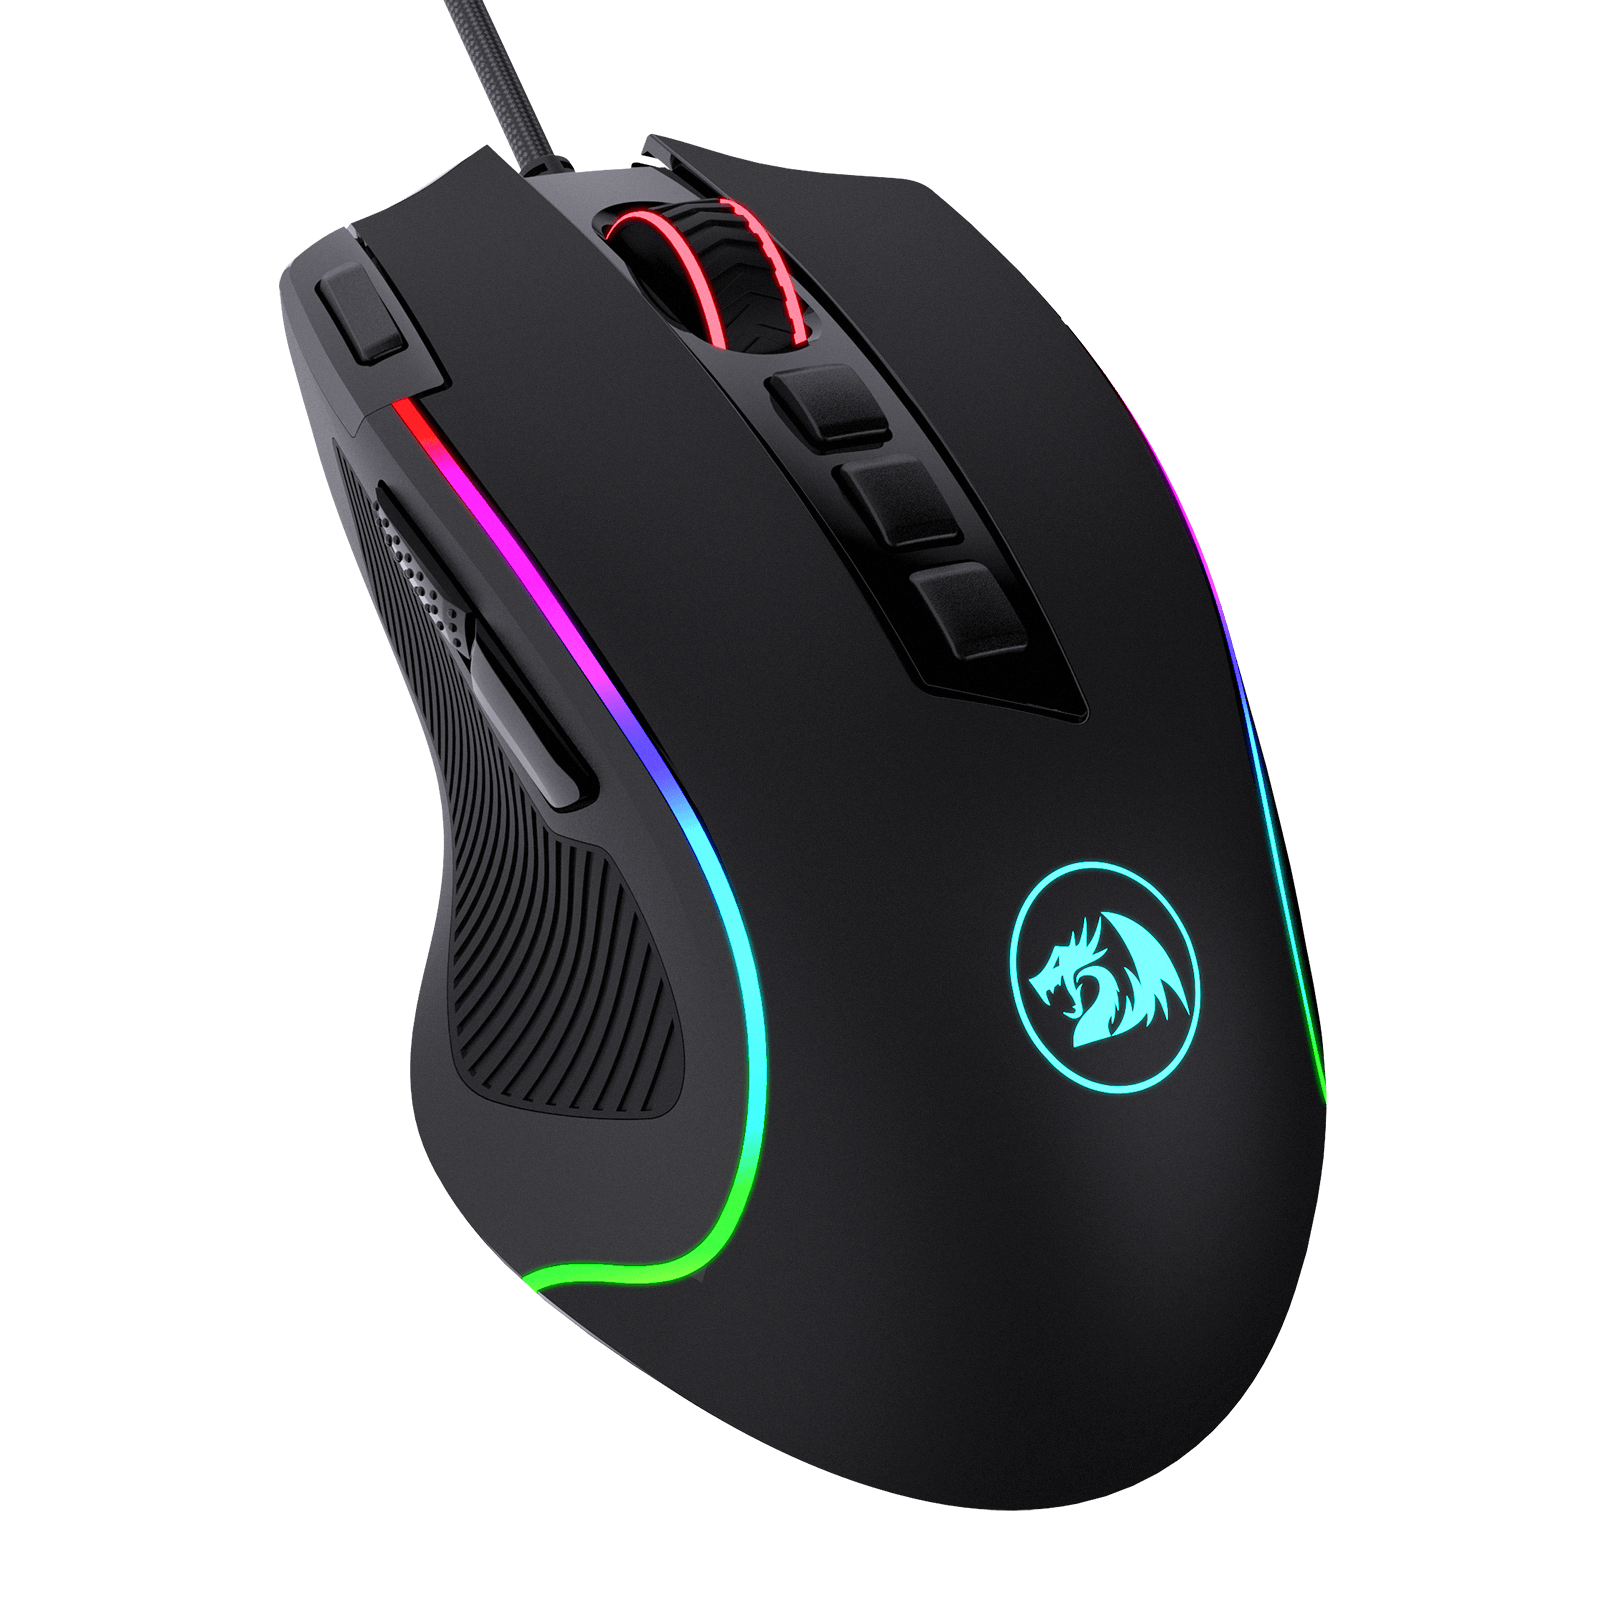 Redragon M612 Predator RGB Gaming Mice